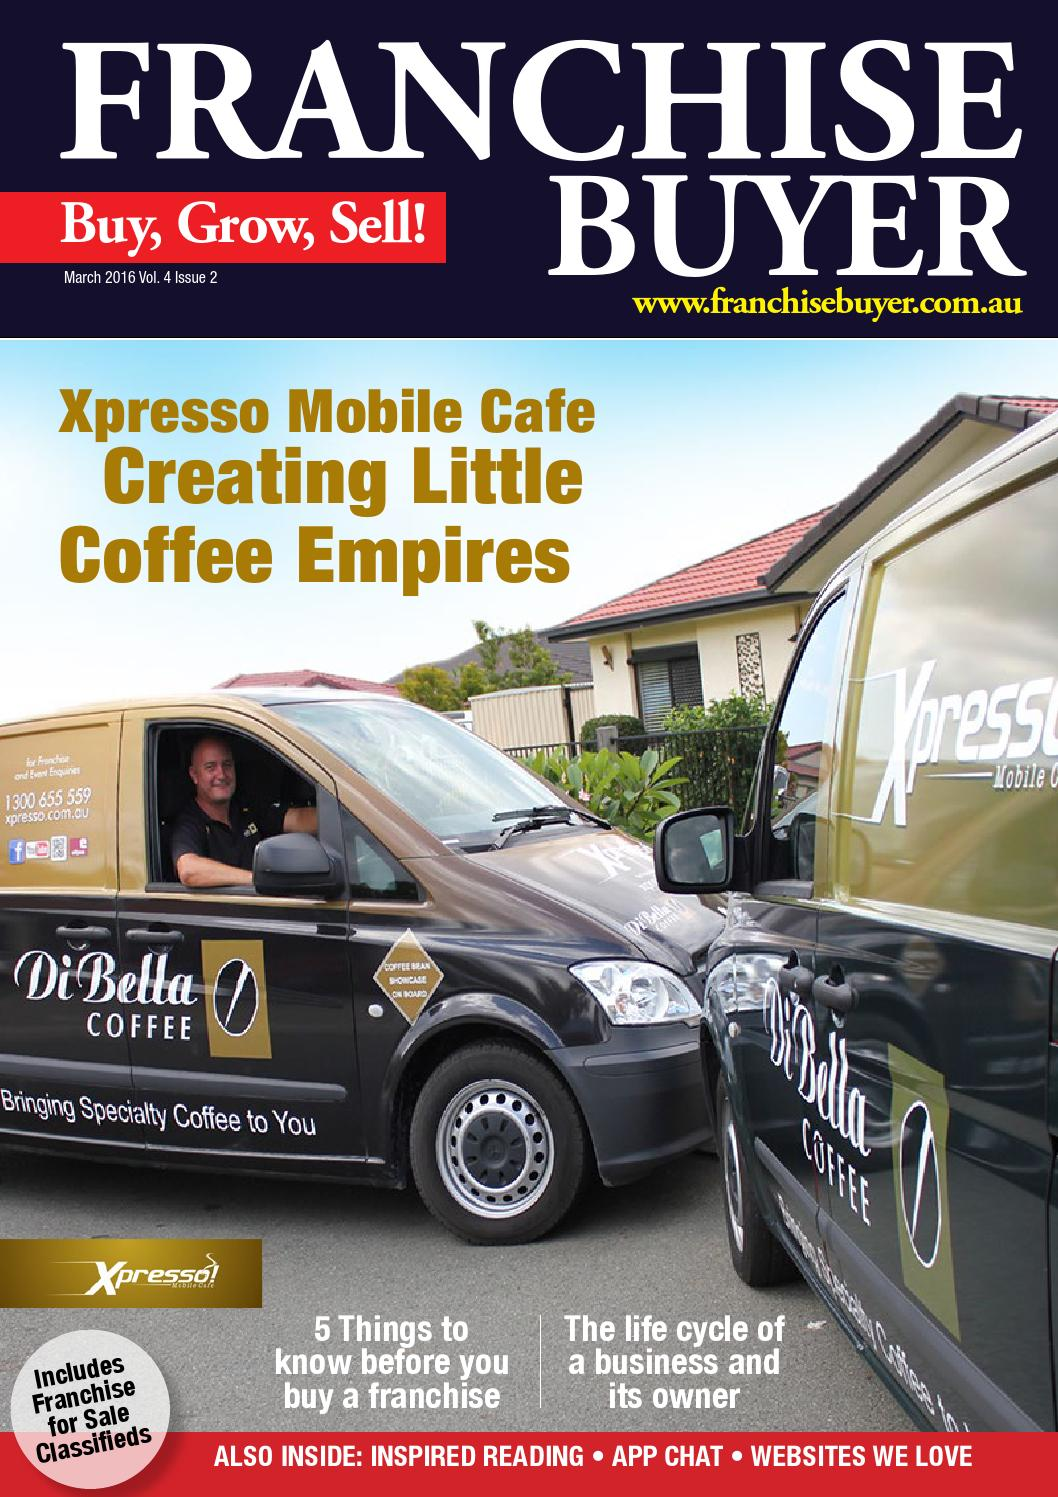 Franchise Buyer, Vol 4  Issue 2, 2016 by franchise buyer - issuu